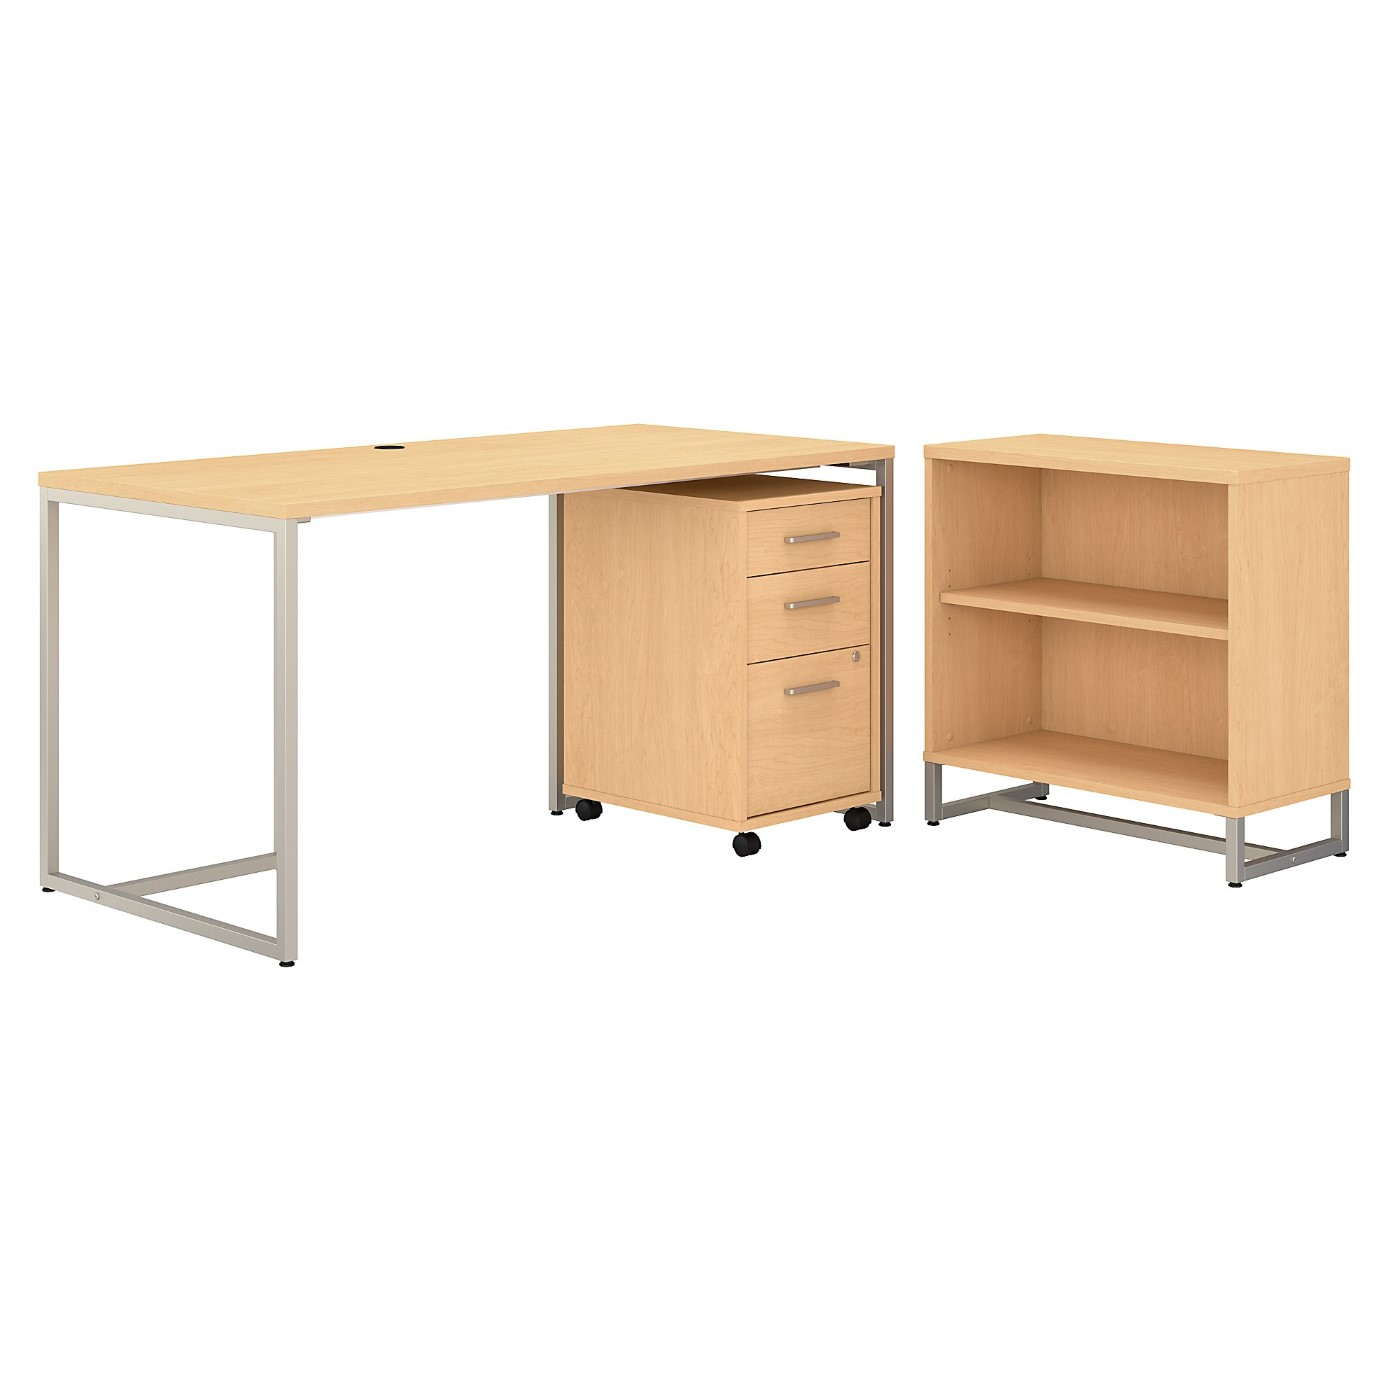 OFFICE BY KATHY IRELAND® METHOD 60W TABLE DESK WITH BOOKCASE AND MOBILE FILE CABINET. FREE SHIPPING